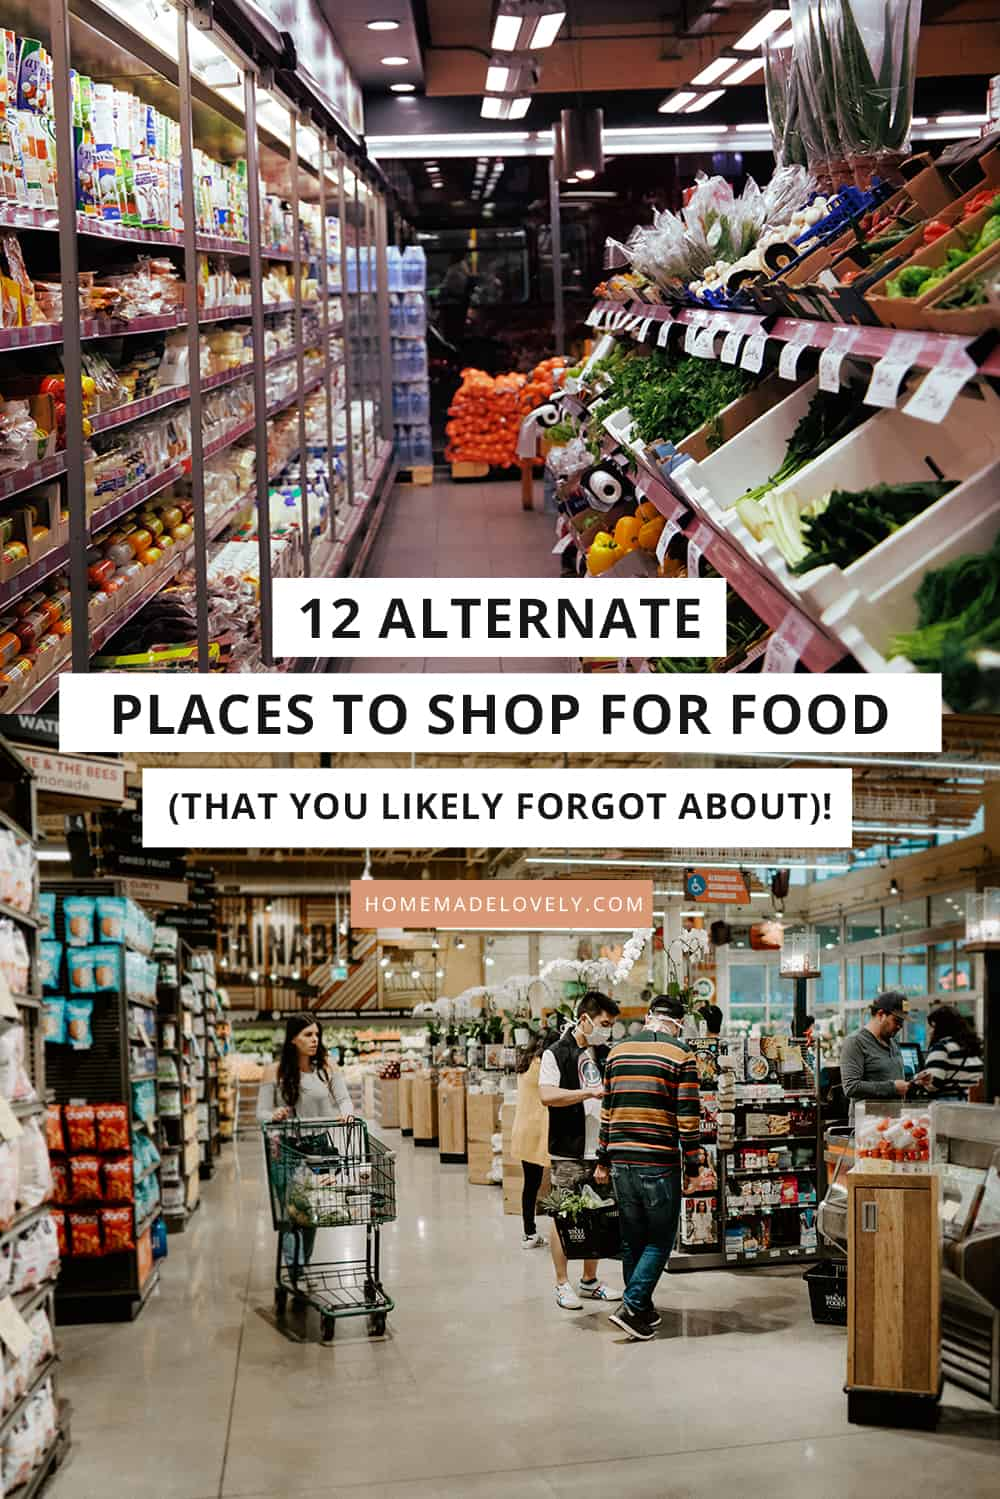 food stores with text overlay that says 12 alternate places to shop for food that you likely forgot about